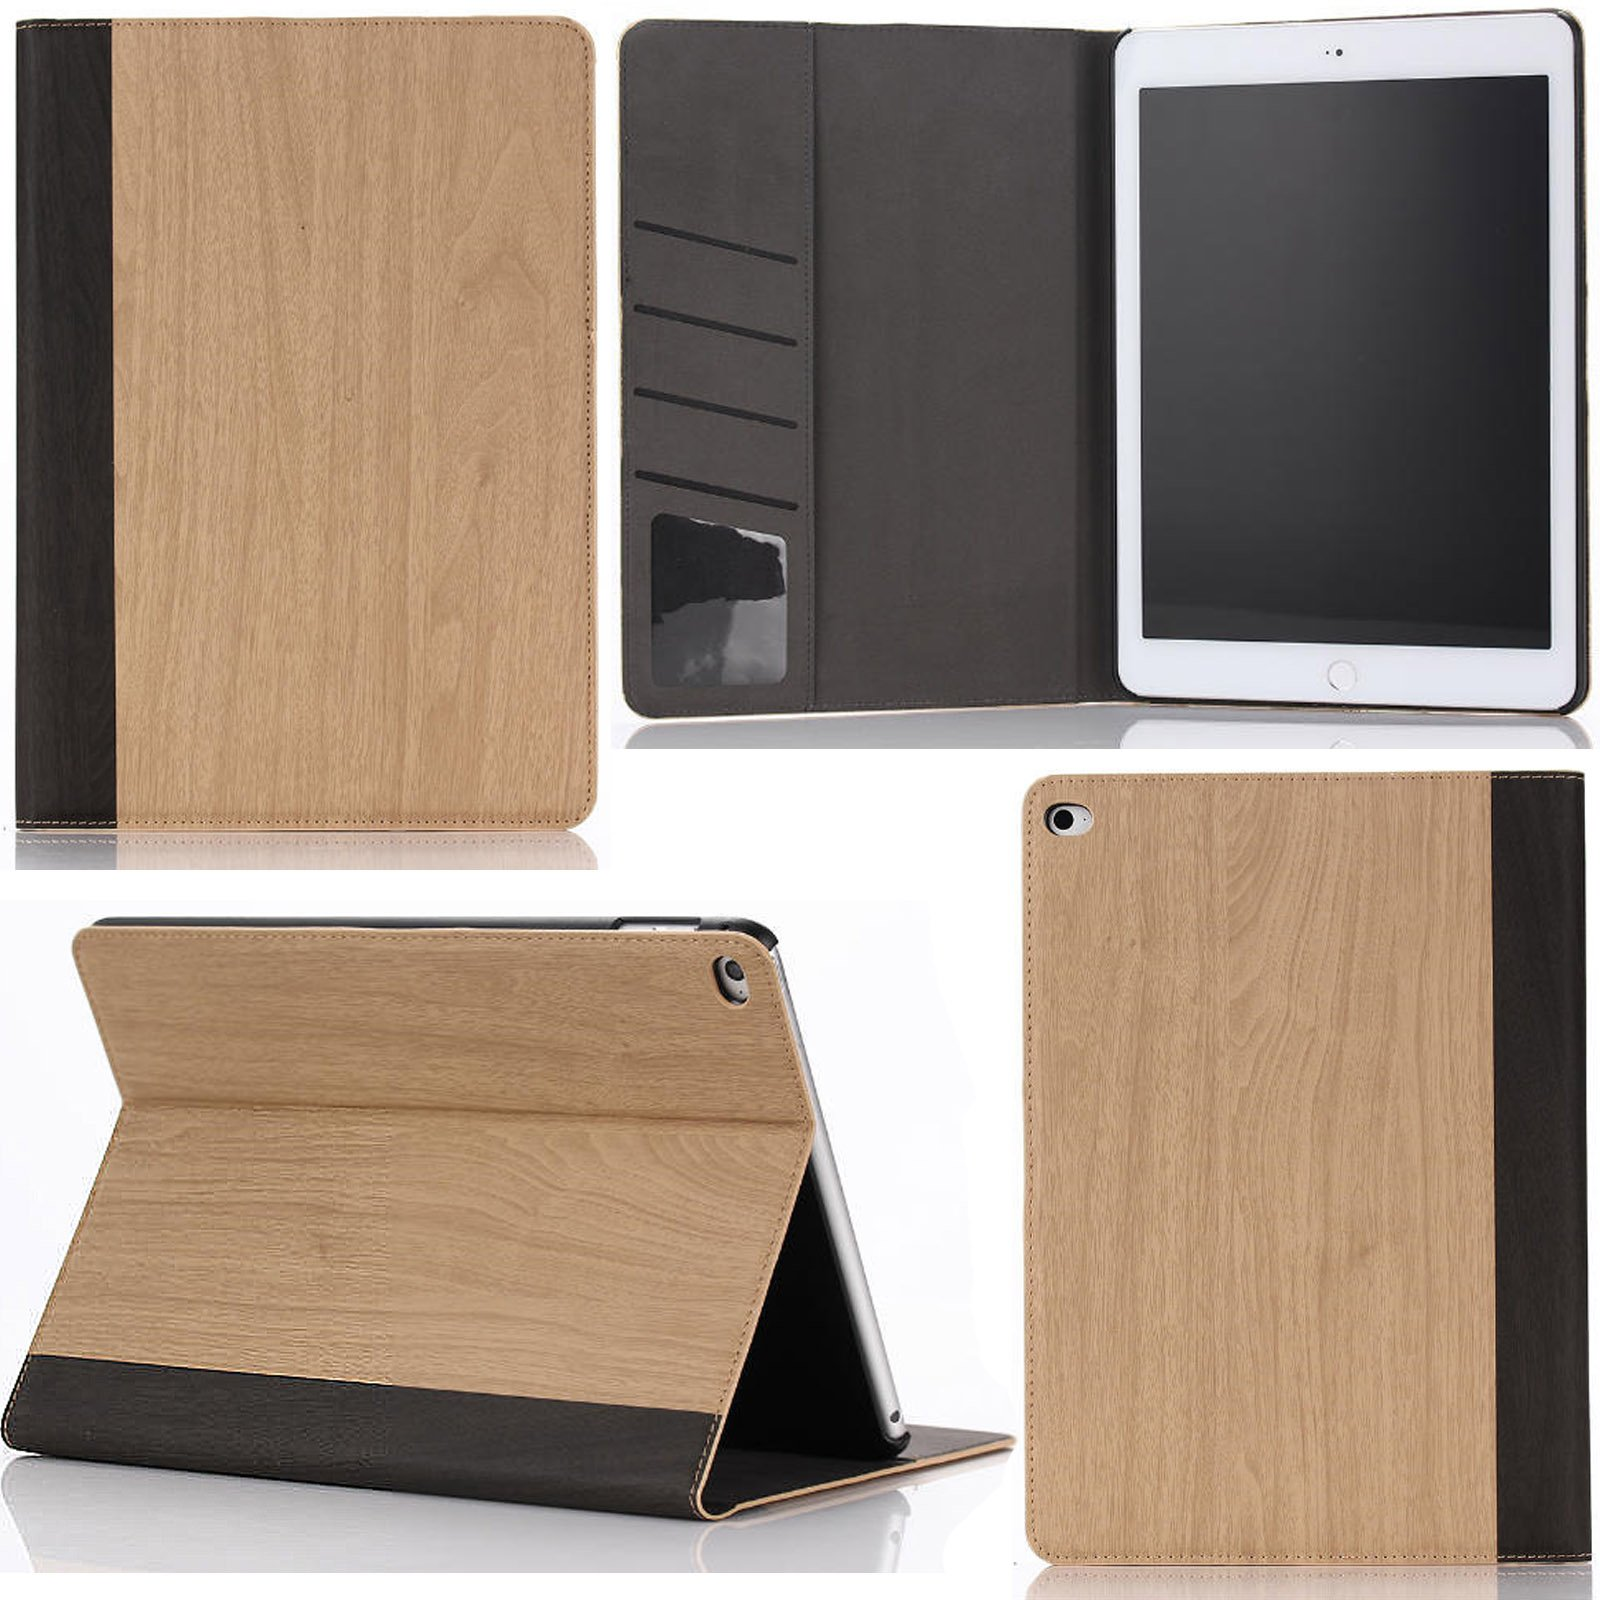 iPad Air 2 Case,Artyond Stand Case Smart Magnetic With [Auto Wake/Sleep Feature] Business Durable Stand Book Type Full Protective Wood Grain Painted Card Solts Case For iPad Air 2 /iPad 6 (Khaki)